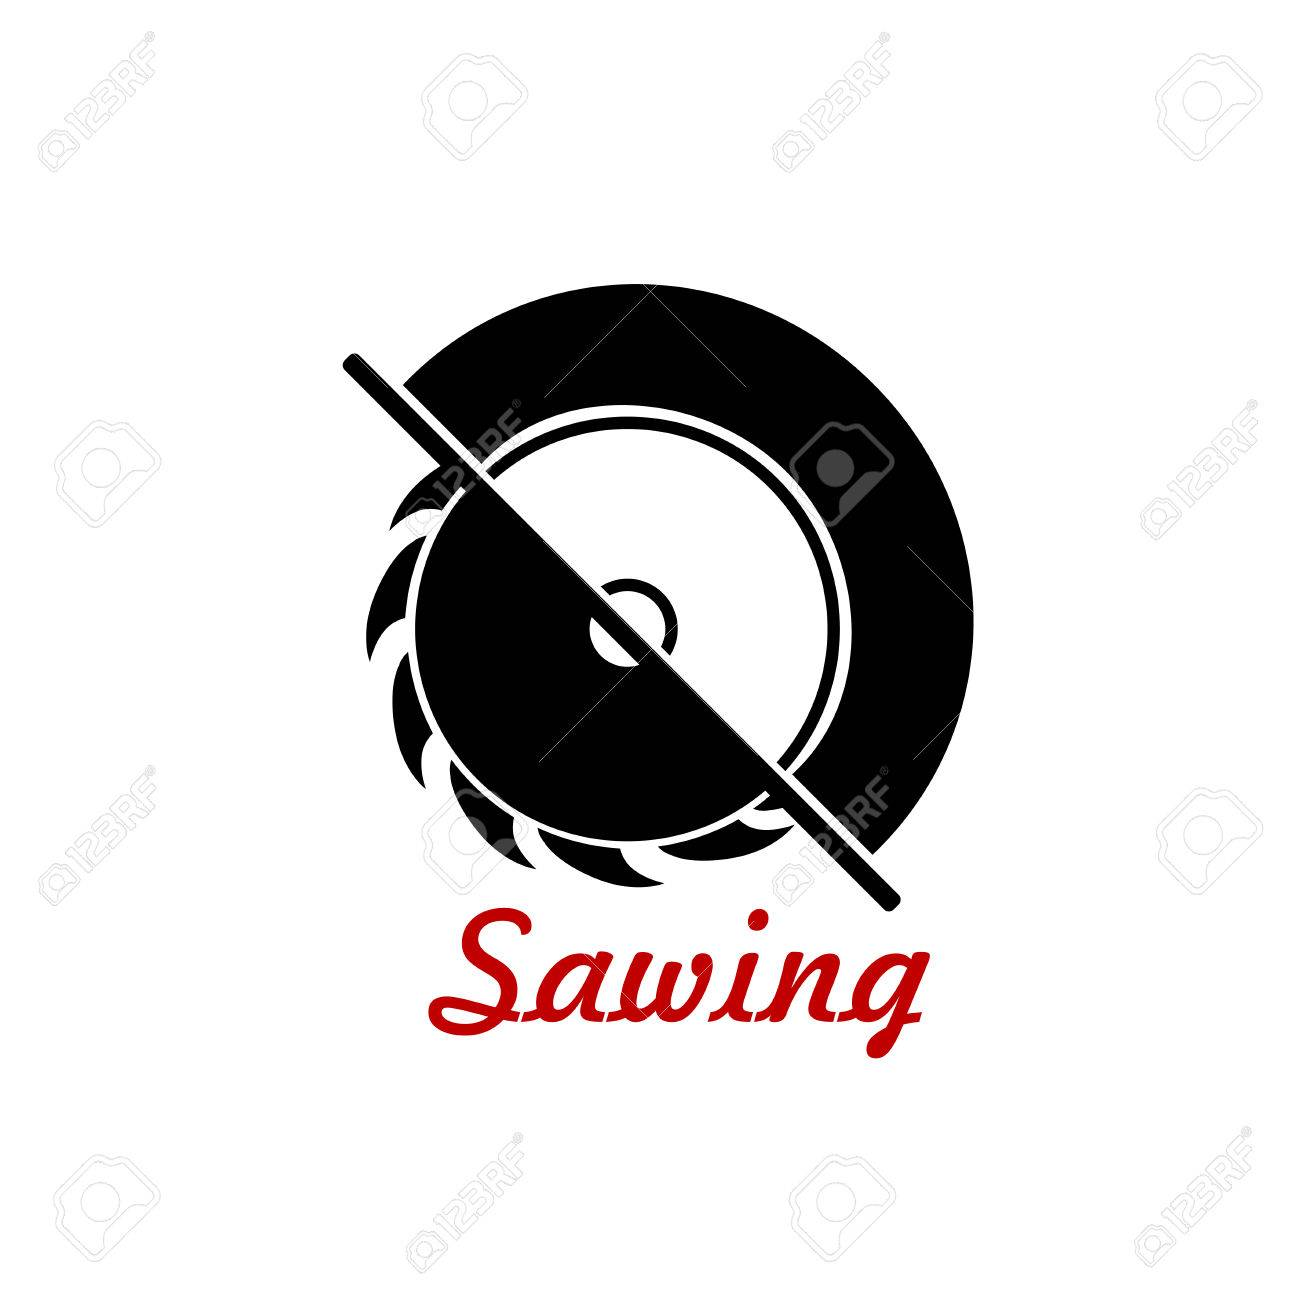 circular saw blade silhouette. bench saw tool black silhouette with sharp circular blade isolated on white background stock vector